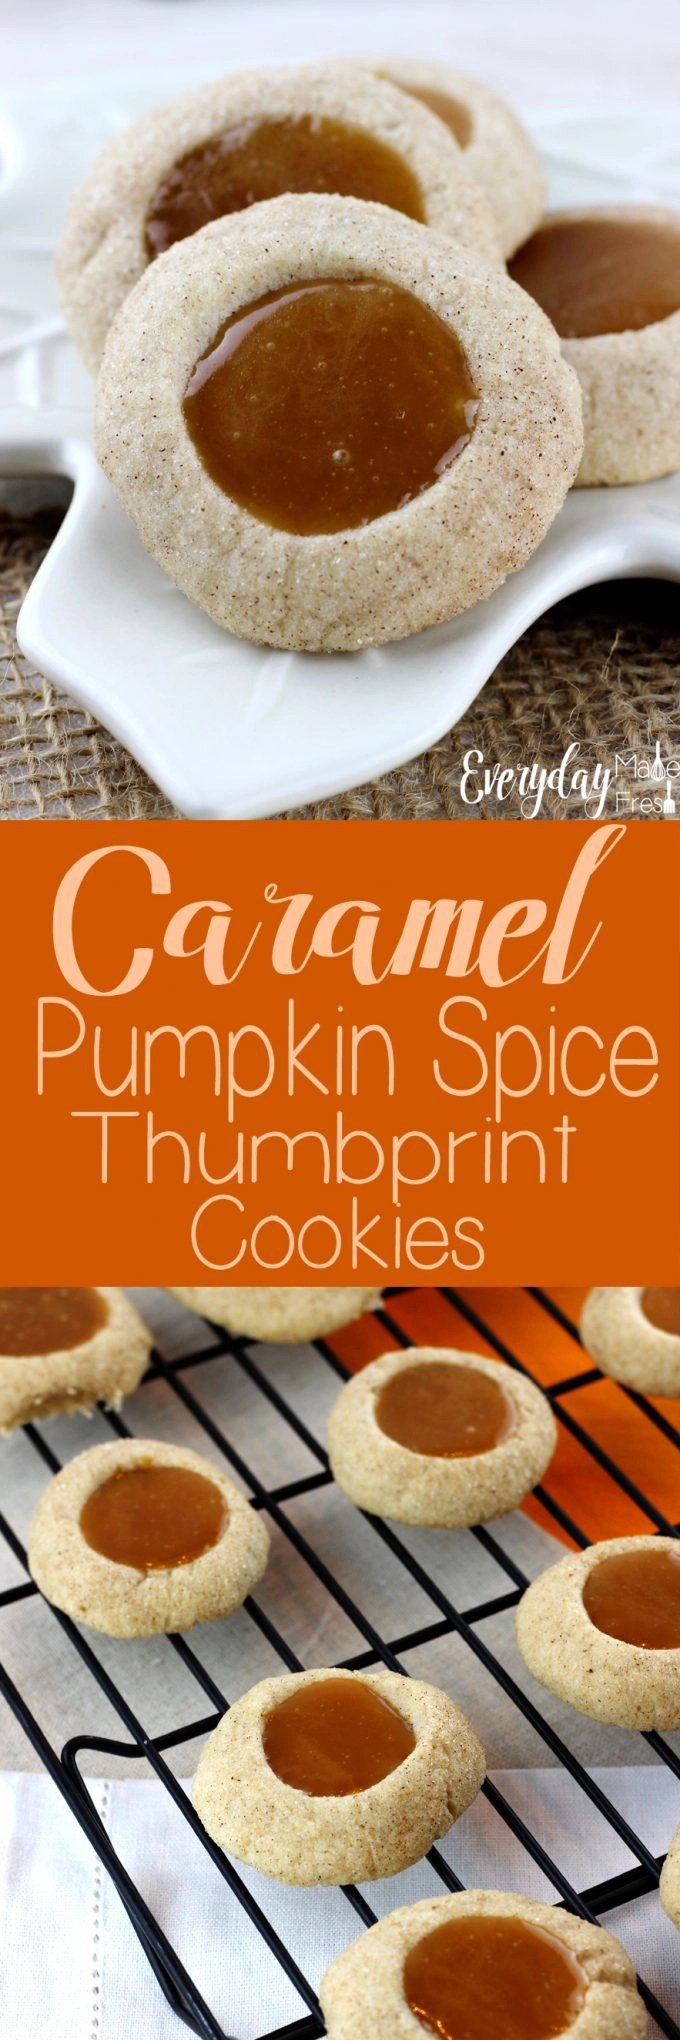 These Caramel Pumpkin Spice Thumbprint Cookies are simple to make and perfect for pumpkin spice lovers! What makes these even better is the simple homemade caramel centers! | EverydayMadeFresh.com